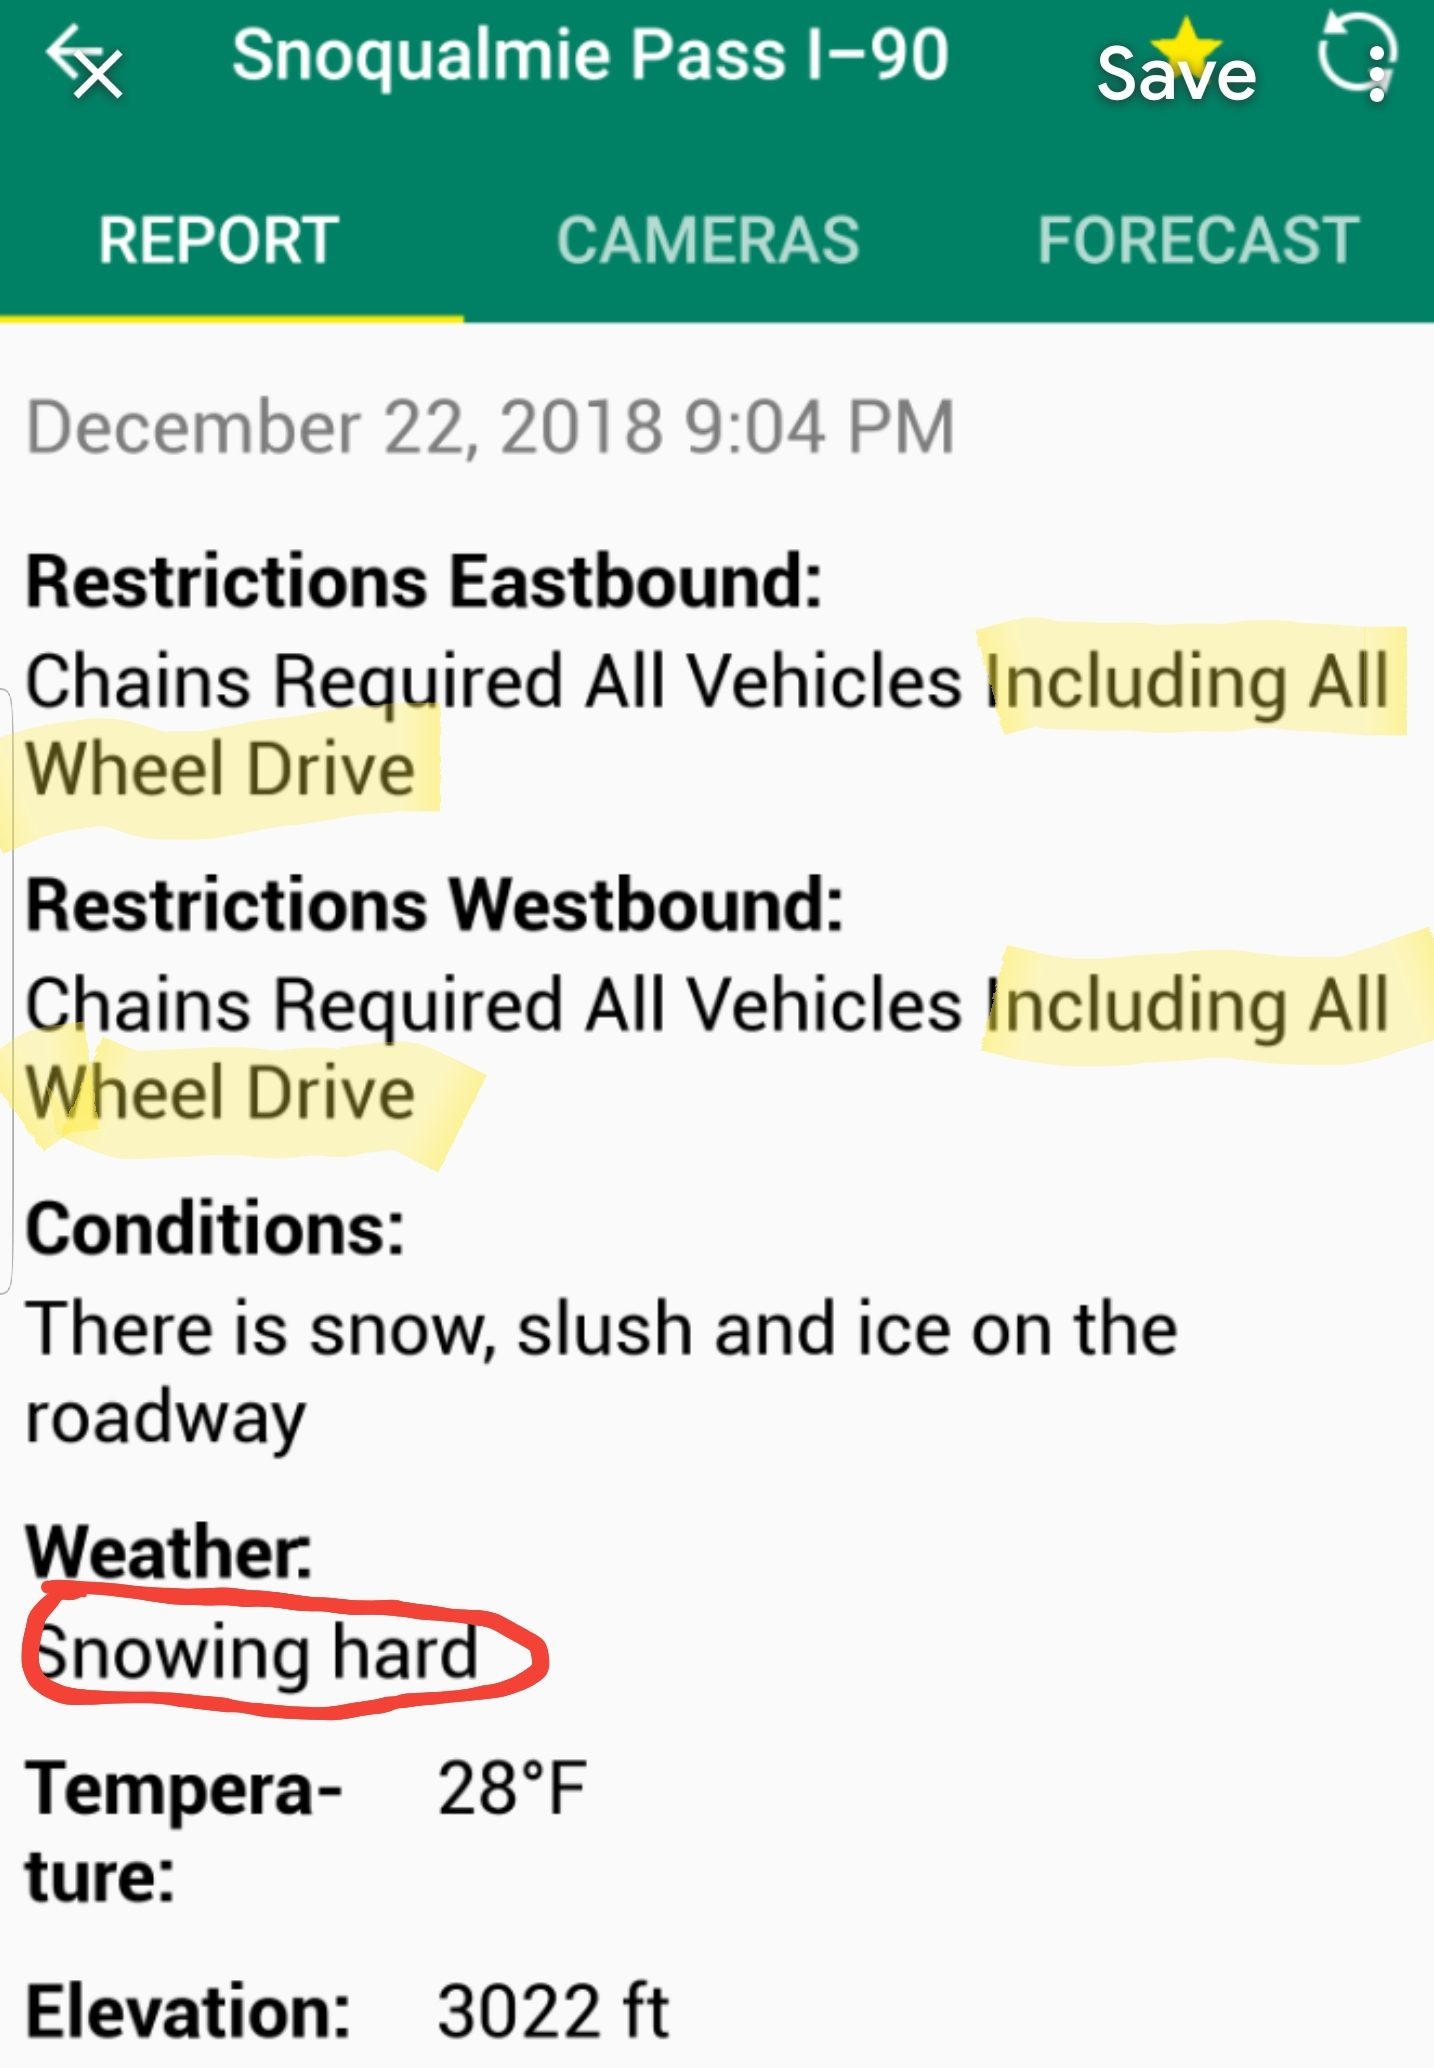 snoqualmie pass chains required on all vehicles